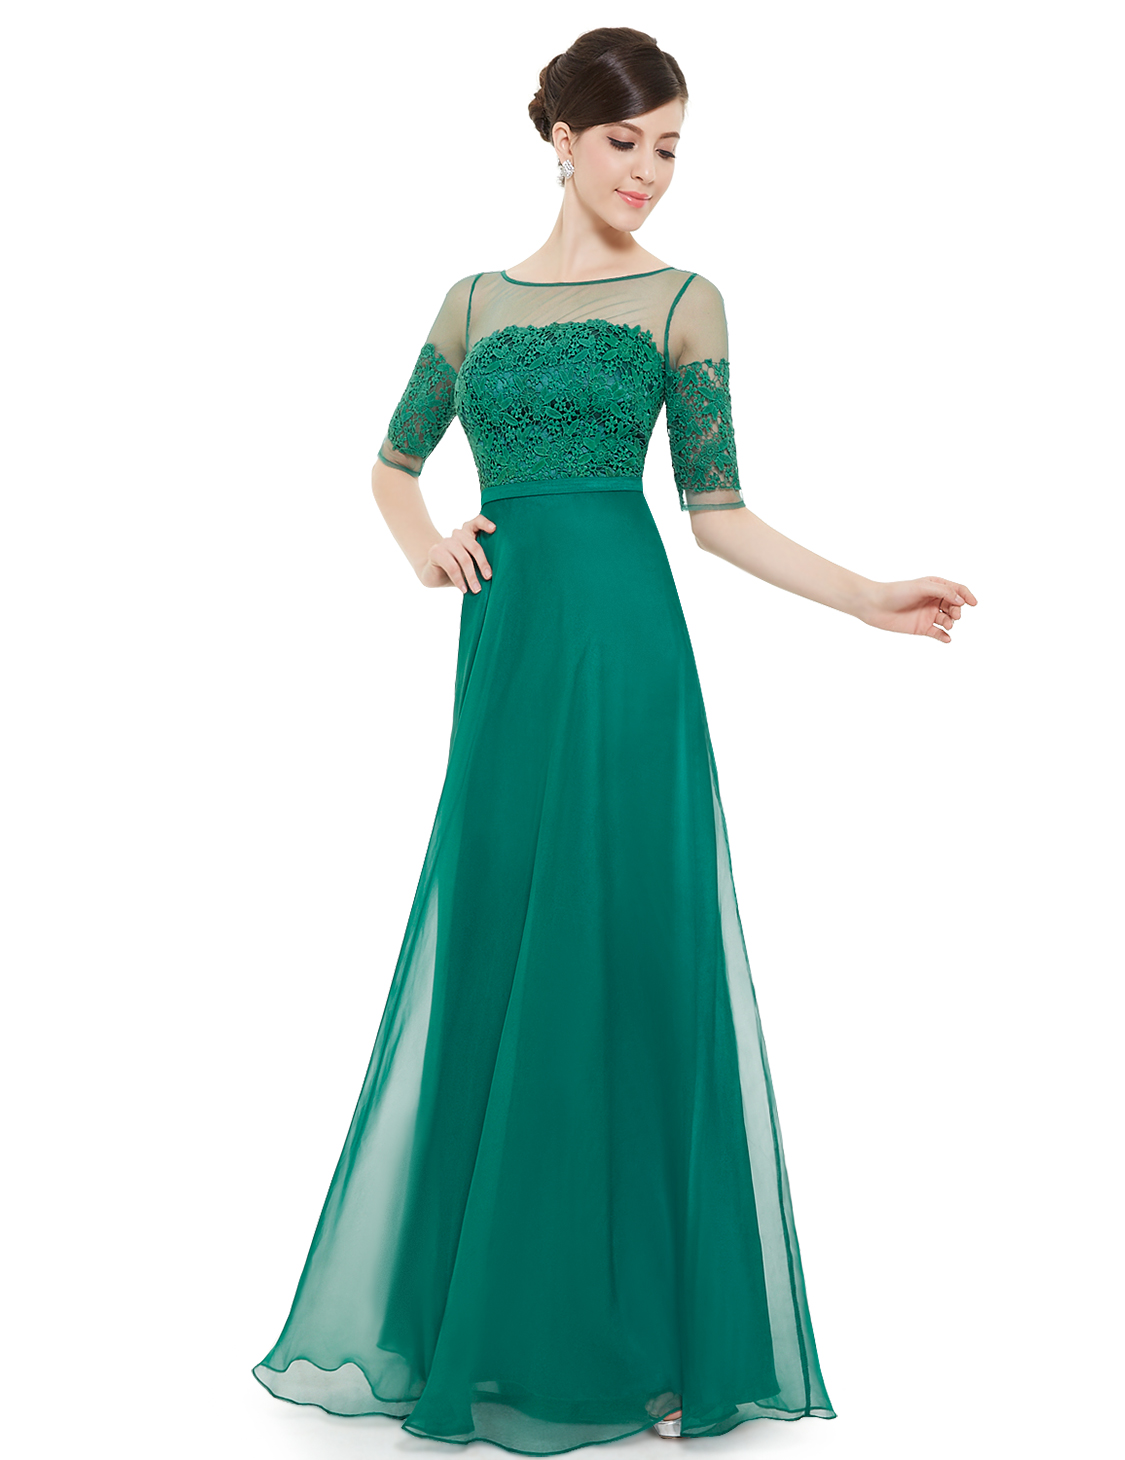 Womens Mother Of The Bride Dresses Formal Evening Prom Gown 08459 ...